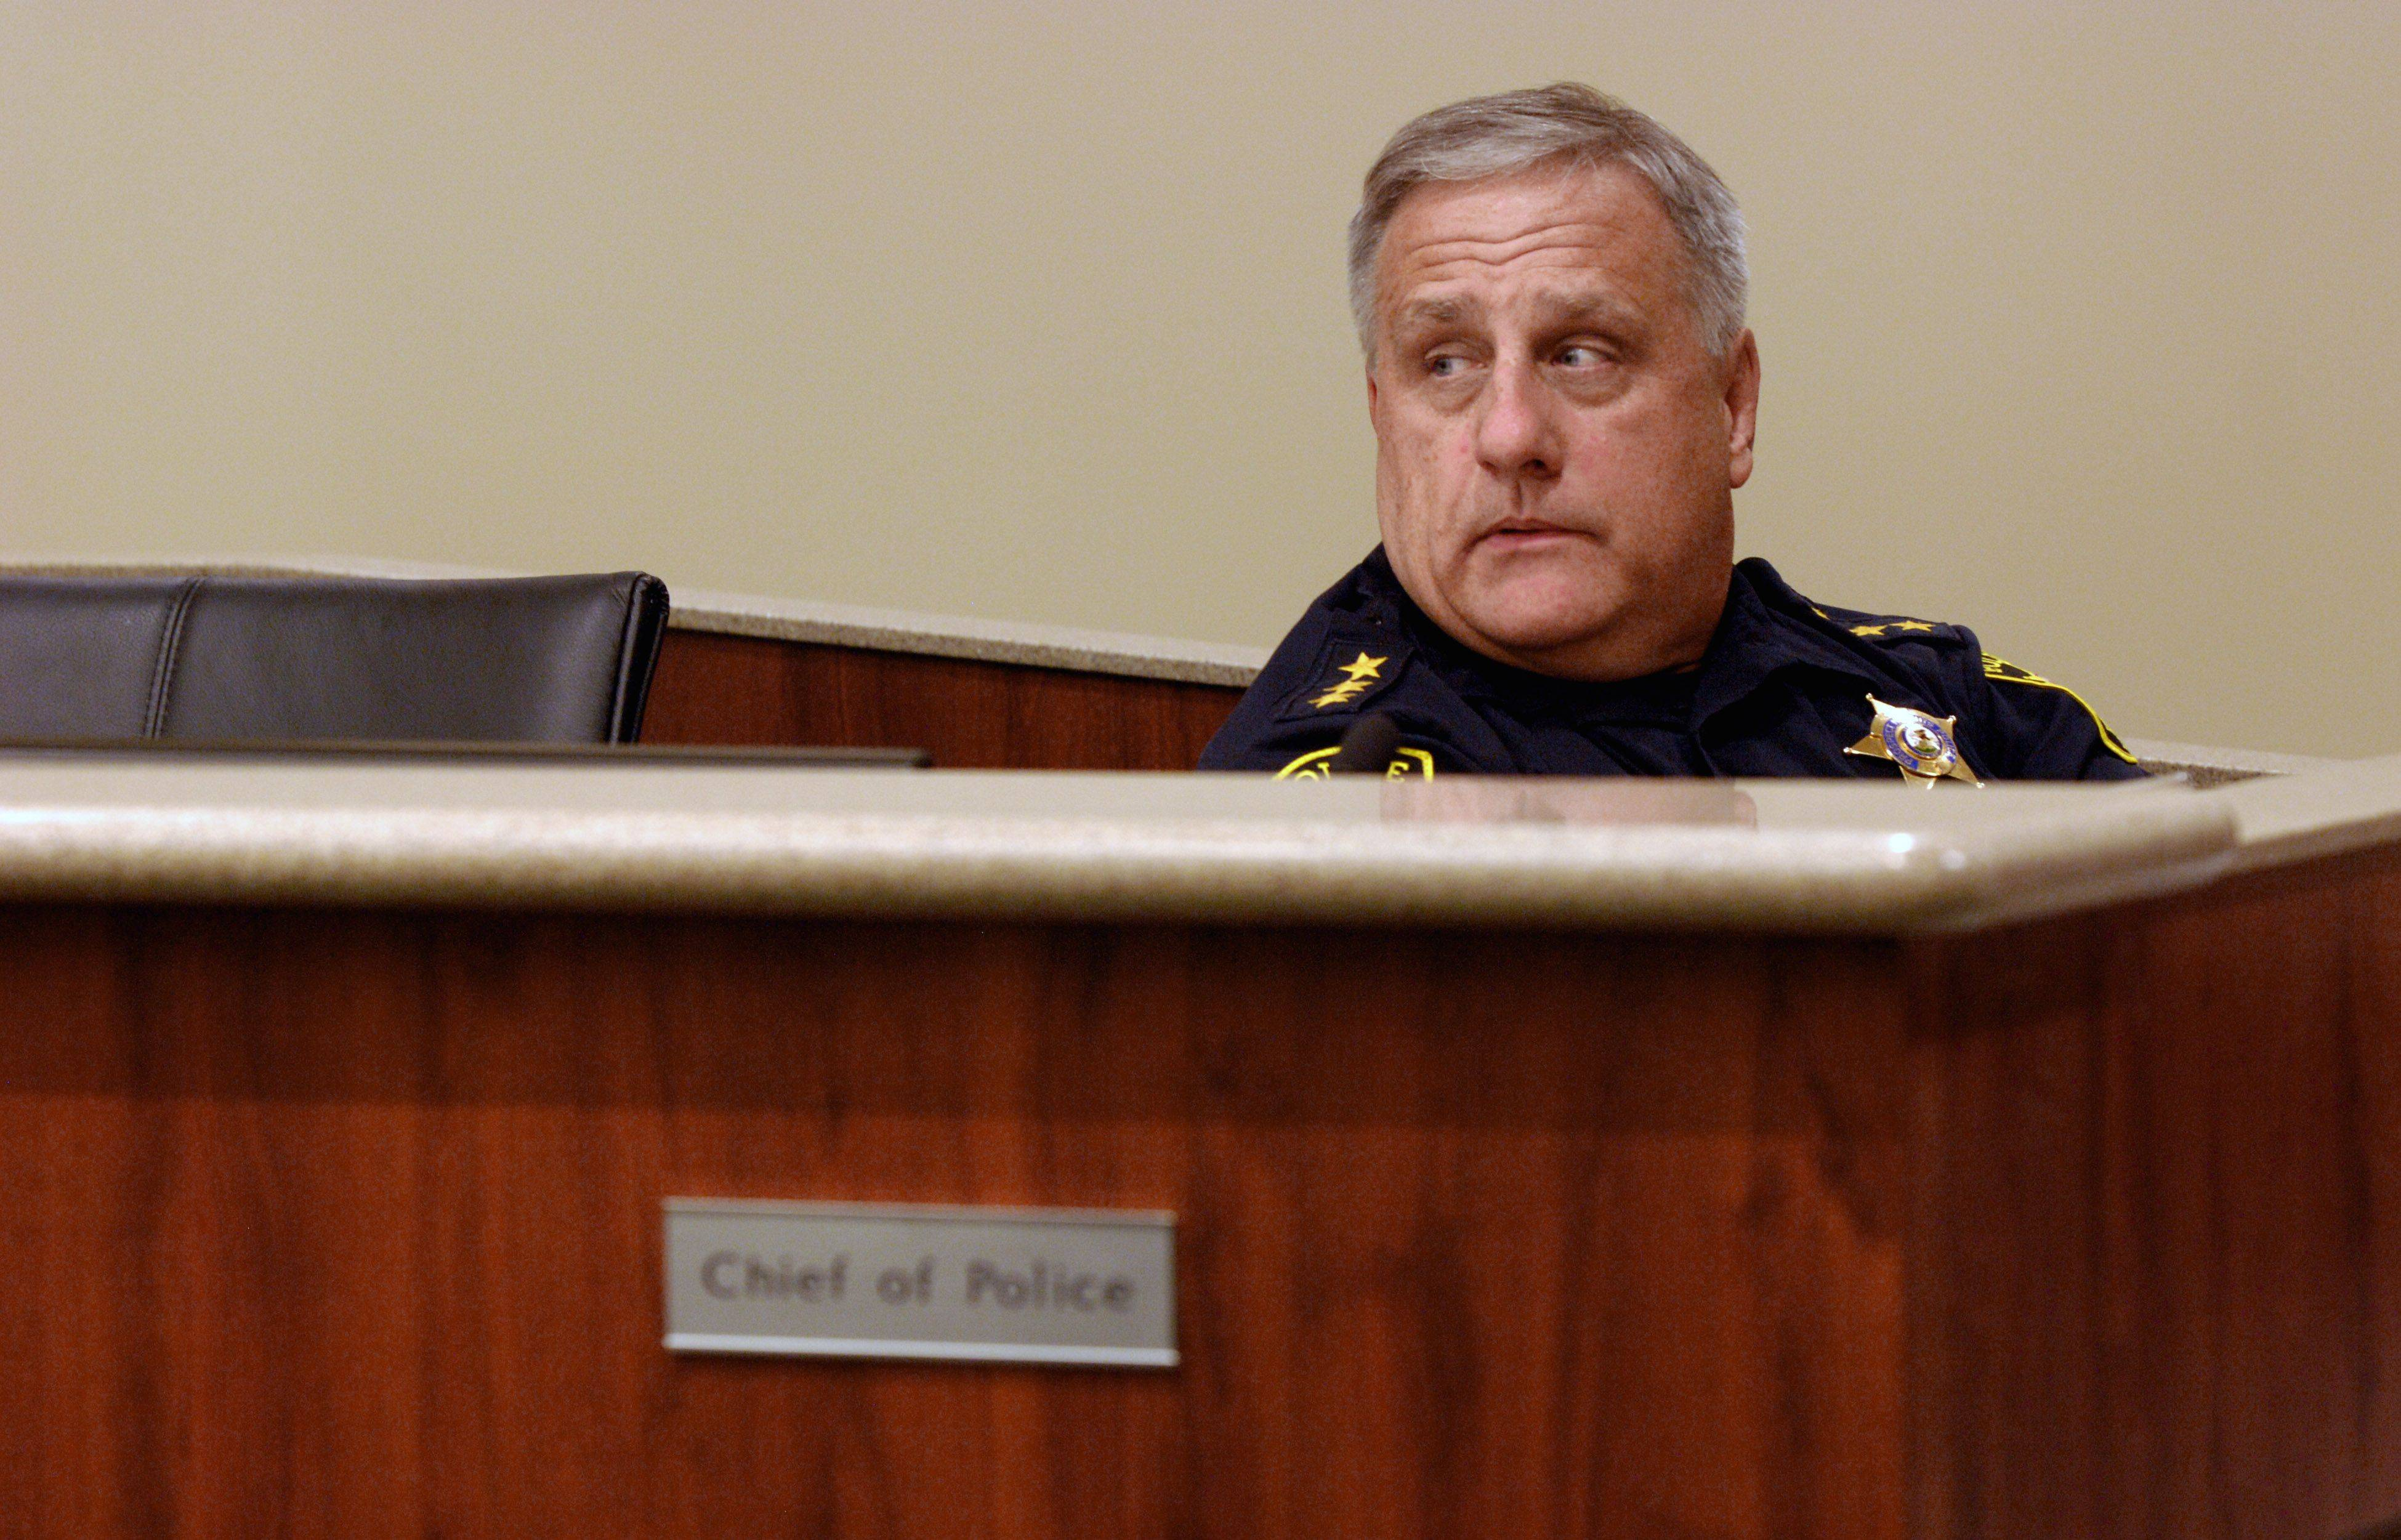 Prospect Hts. police chief resigns amid layoff talks